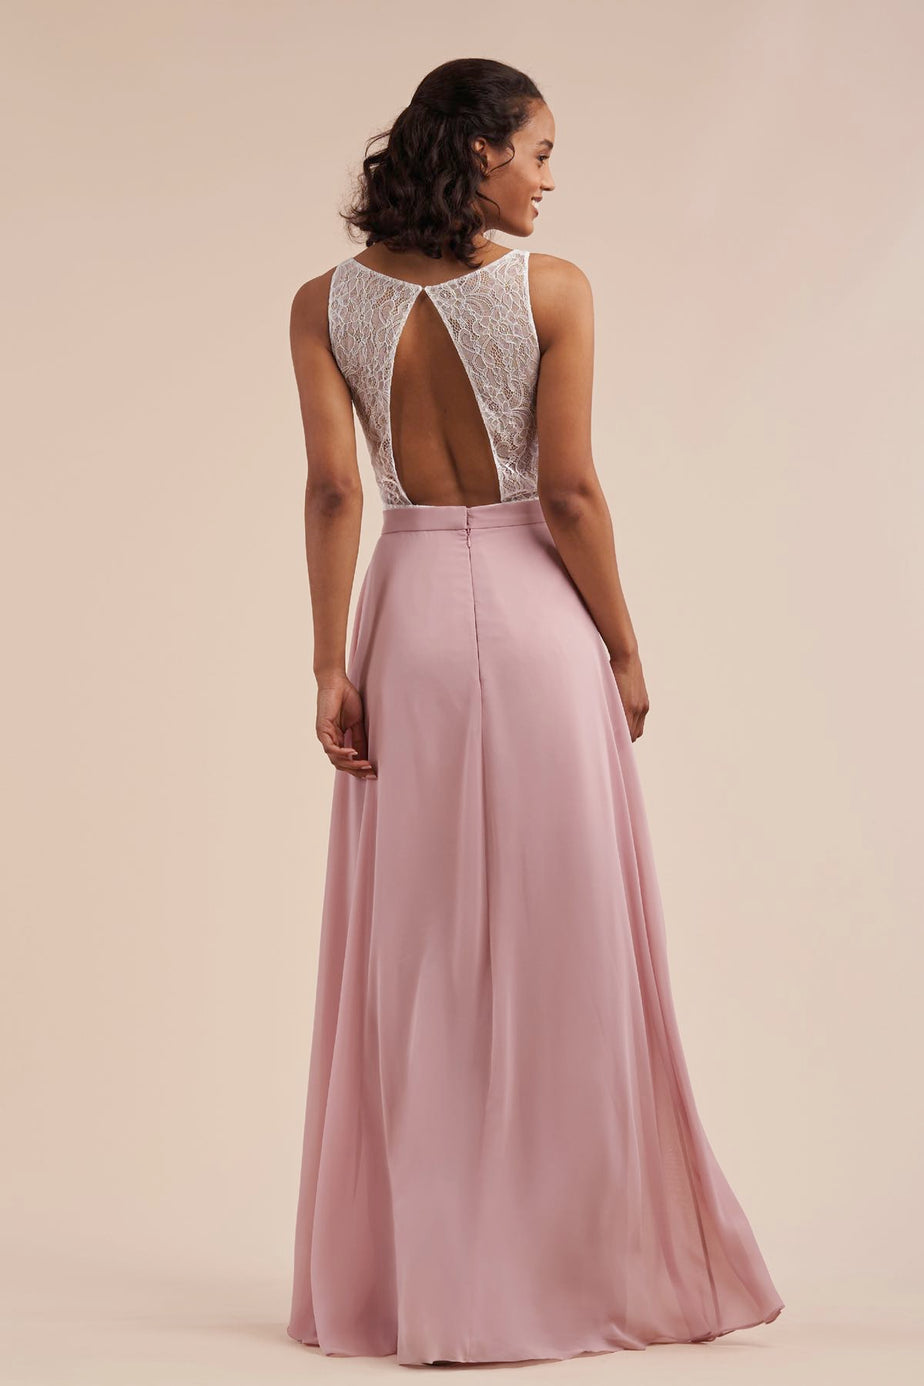 |B2 B213060 Bridesmaid Dress